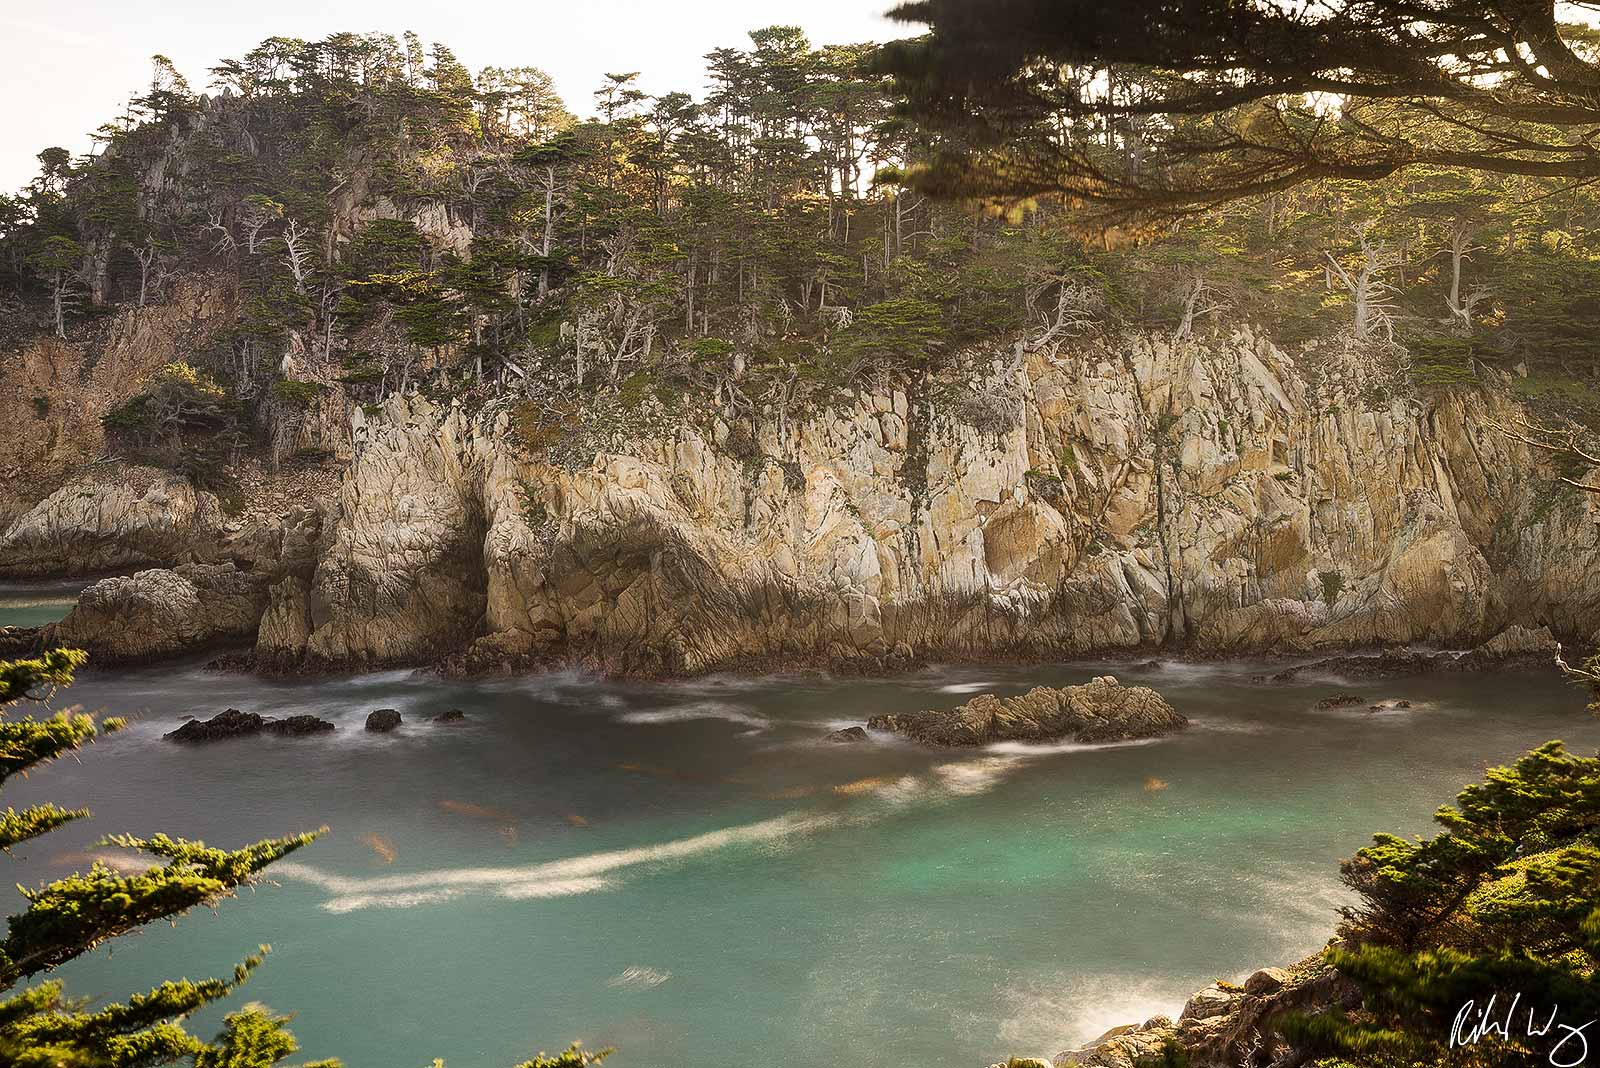 Allan Memorial Grove Scenic Overlook, Point Lobos State Natural Reserve, California, Photo, photo